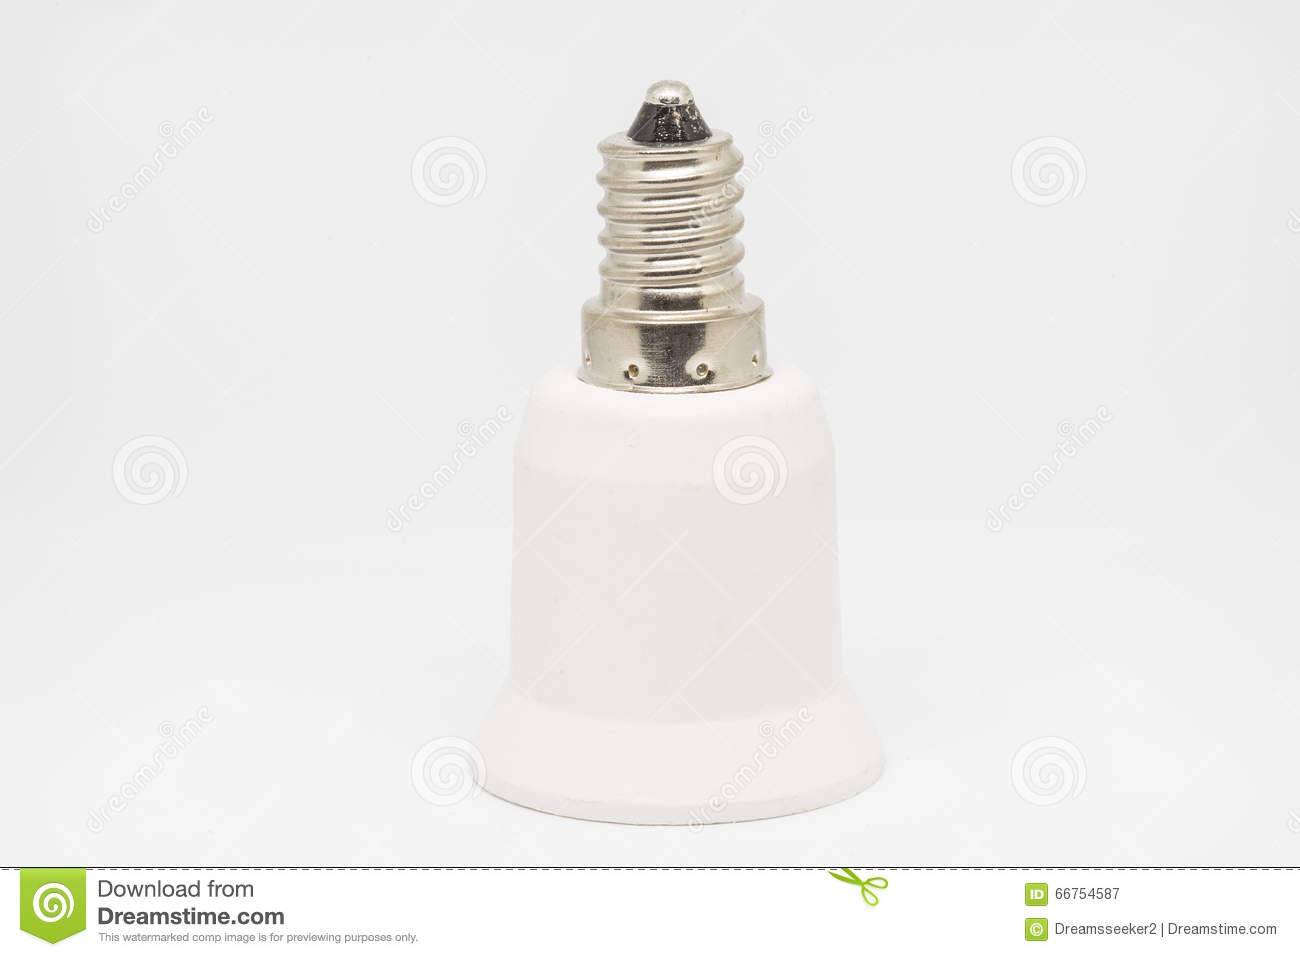 E14 E27 Adapter Lampholder Adapter E14 To E27 Stock Image Image Of Fixture